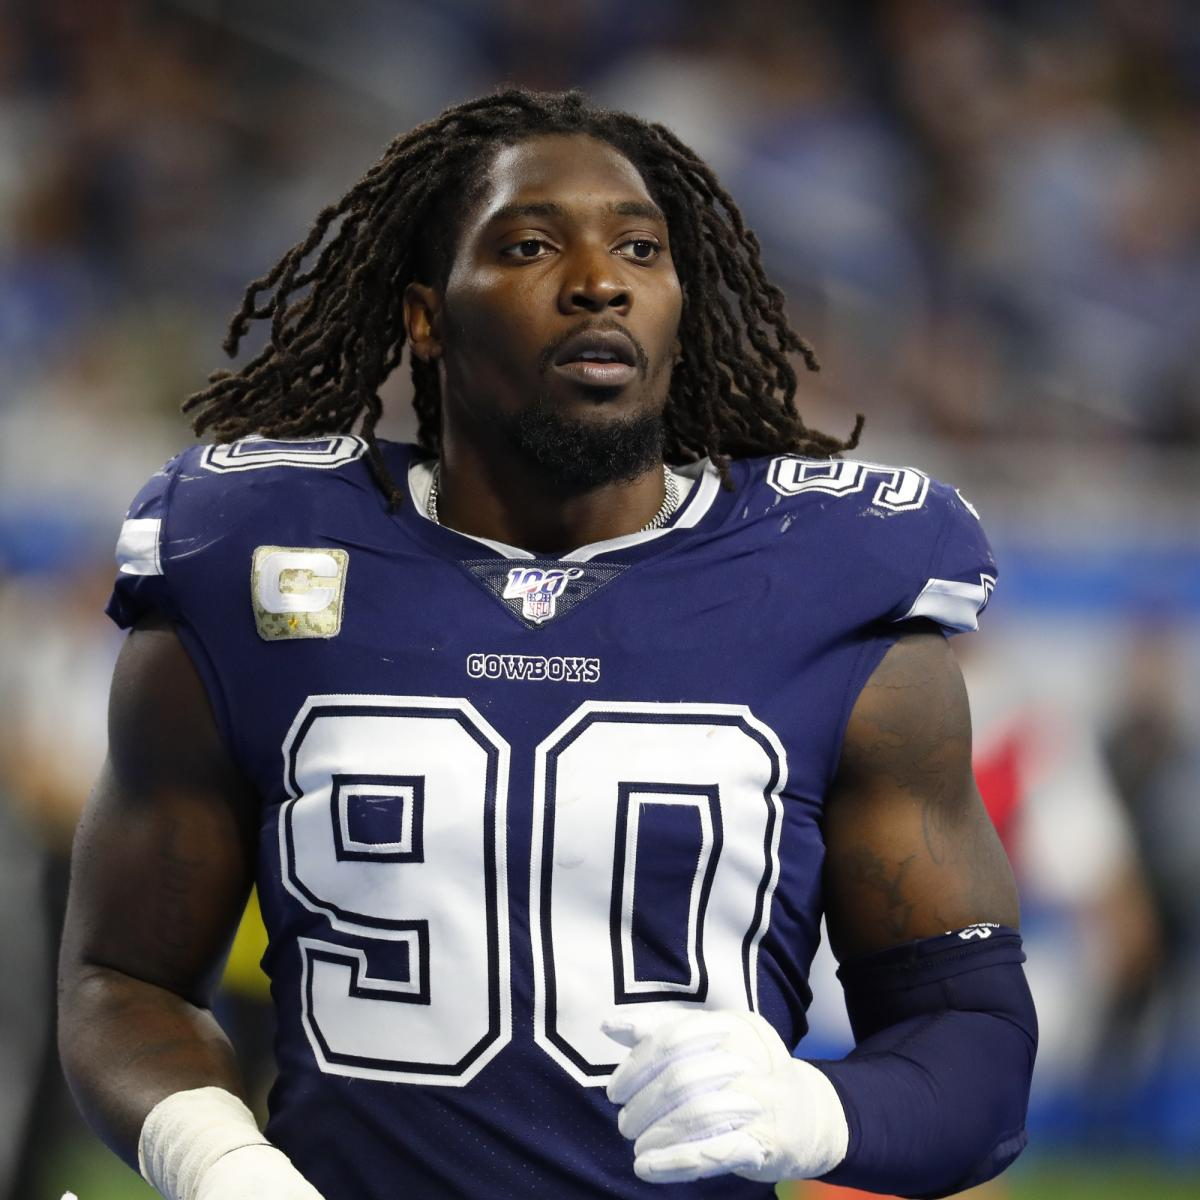 Cowboys' DeMarcus Lawrence Unsure If He'll Report to Training Camp Amid COVID-19 thumbnail